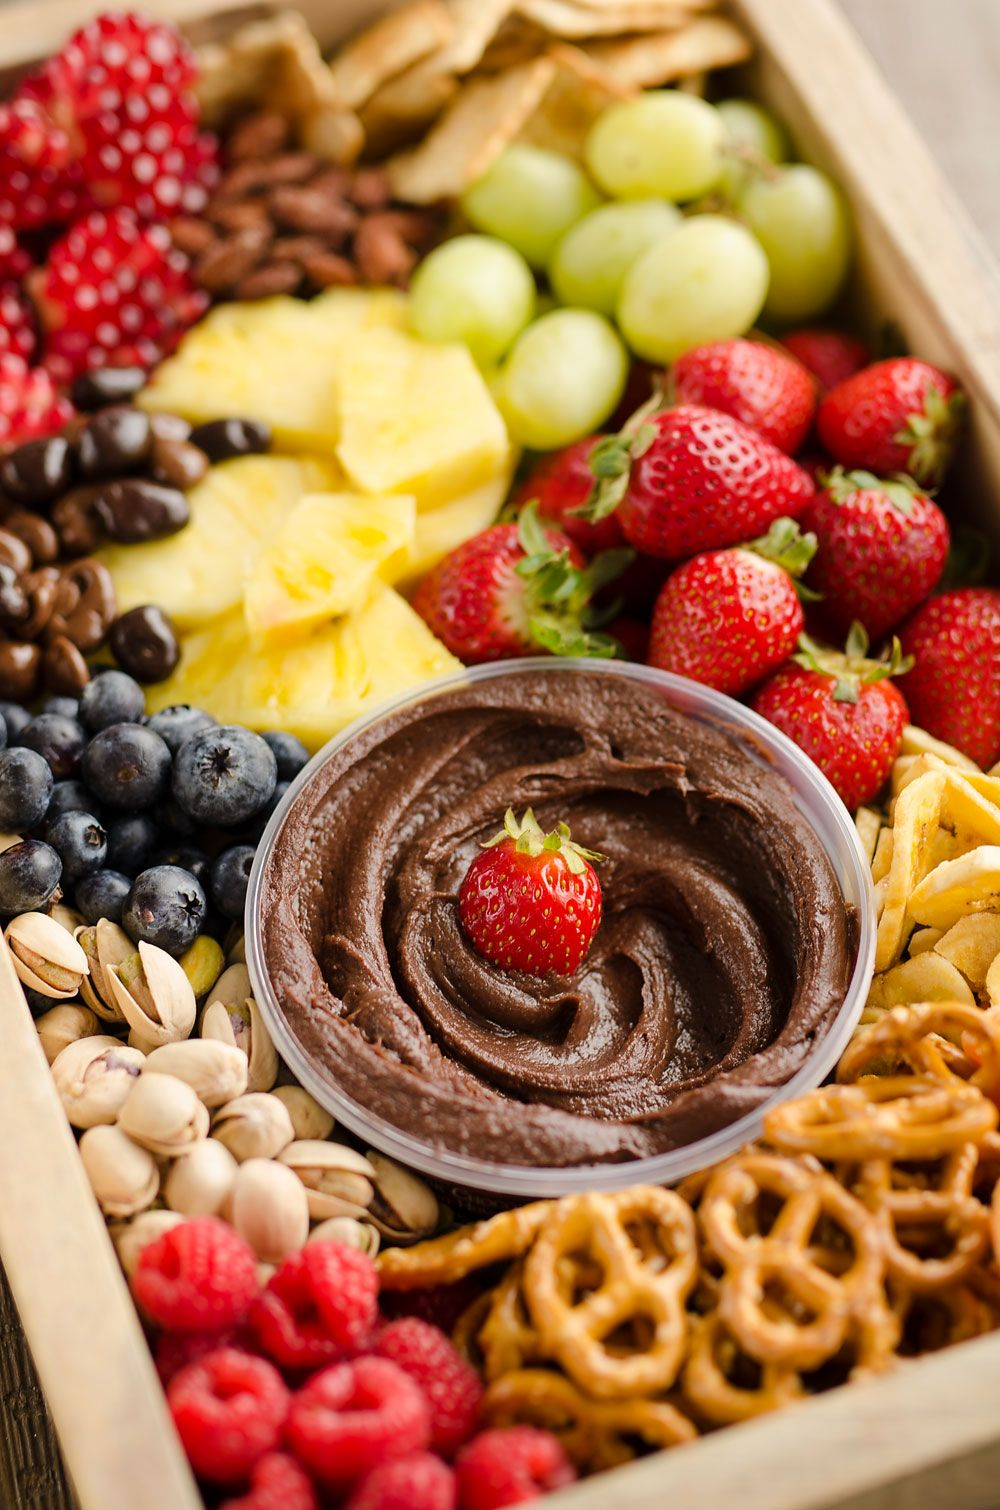 Healthy Fruit & Chocolate Party Tray is a fantastic